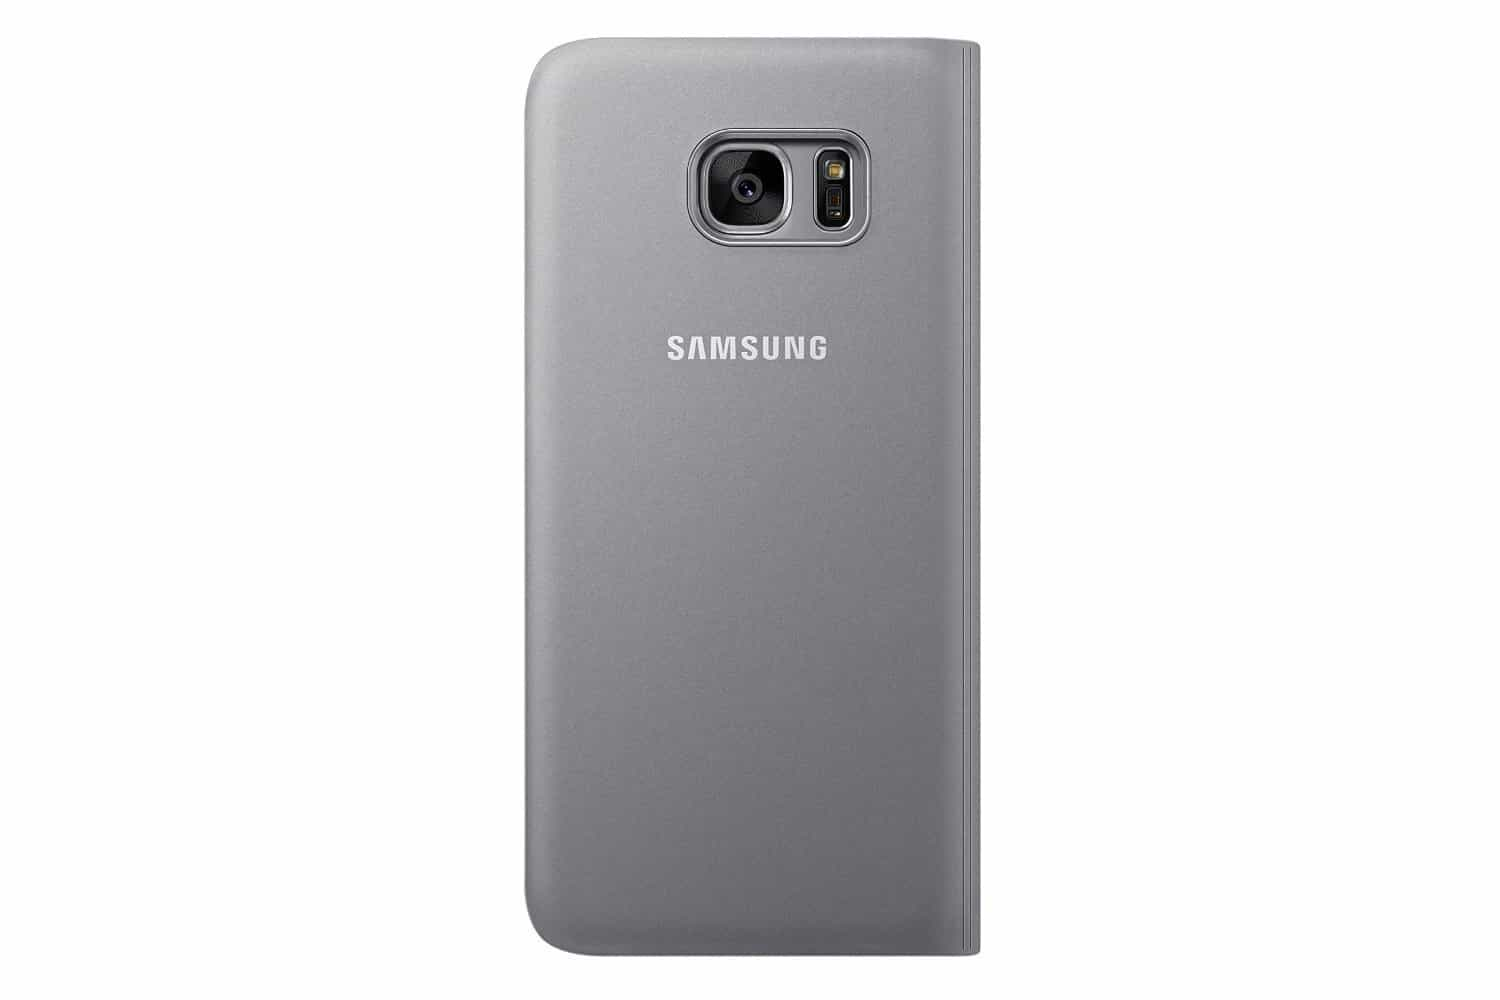 Samsung S7 Edge S-View Cover - Silver 3